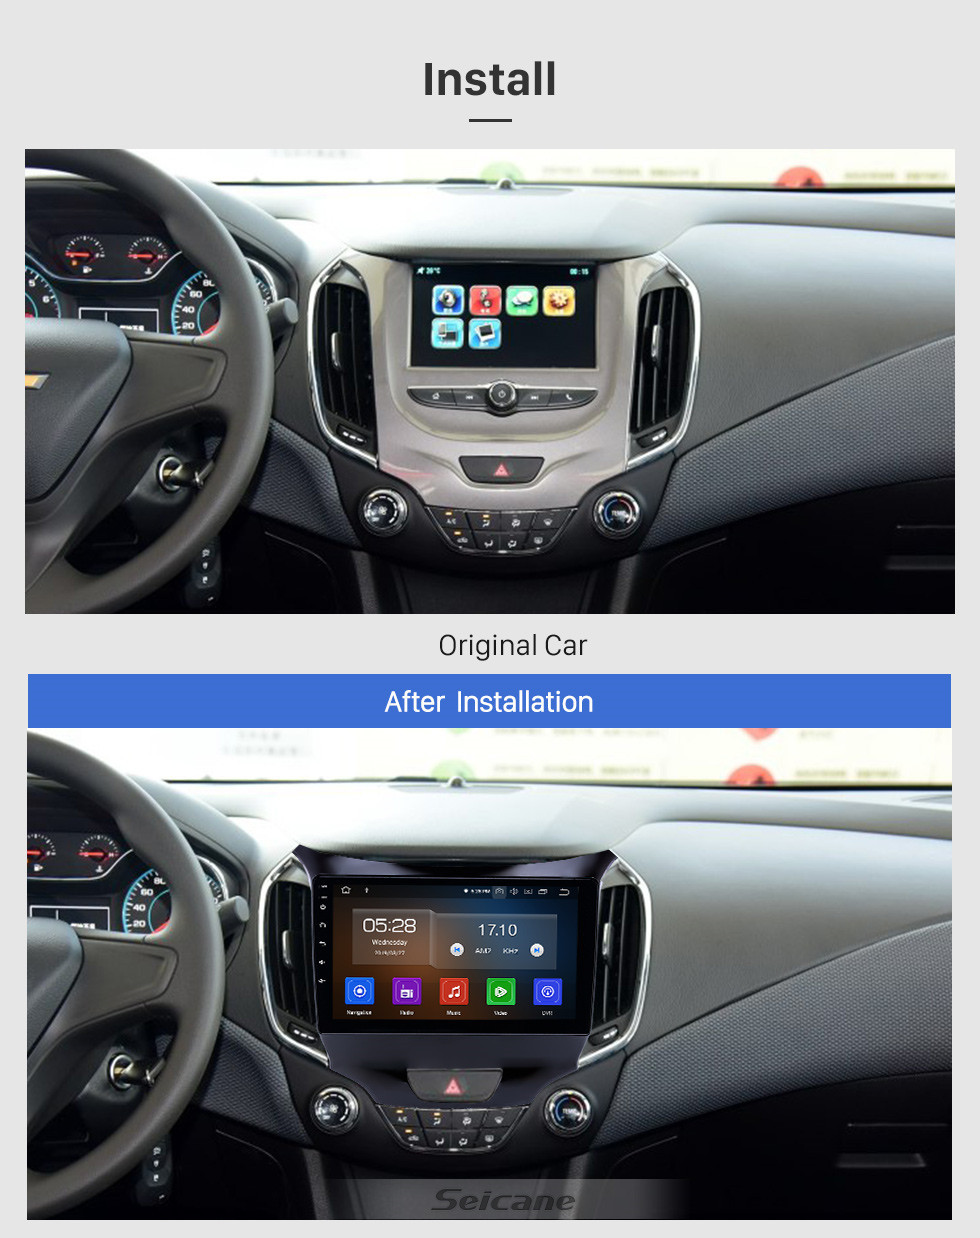 Seicane 9 inch Android 10.0 GPS Navigation Radio for 2015-2018 chevy Chevrolet Cruze with HD Touchscreen Carplay AUX Bluetooth support 1080P